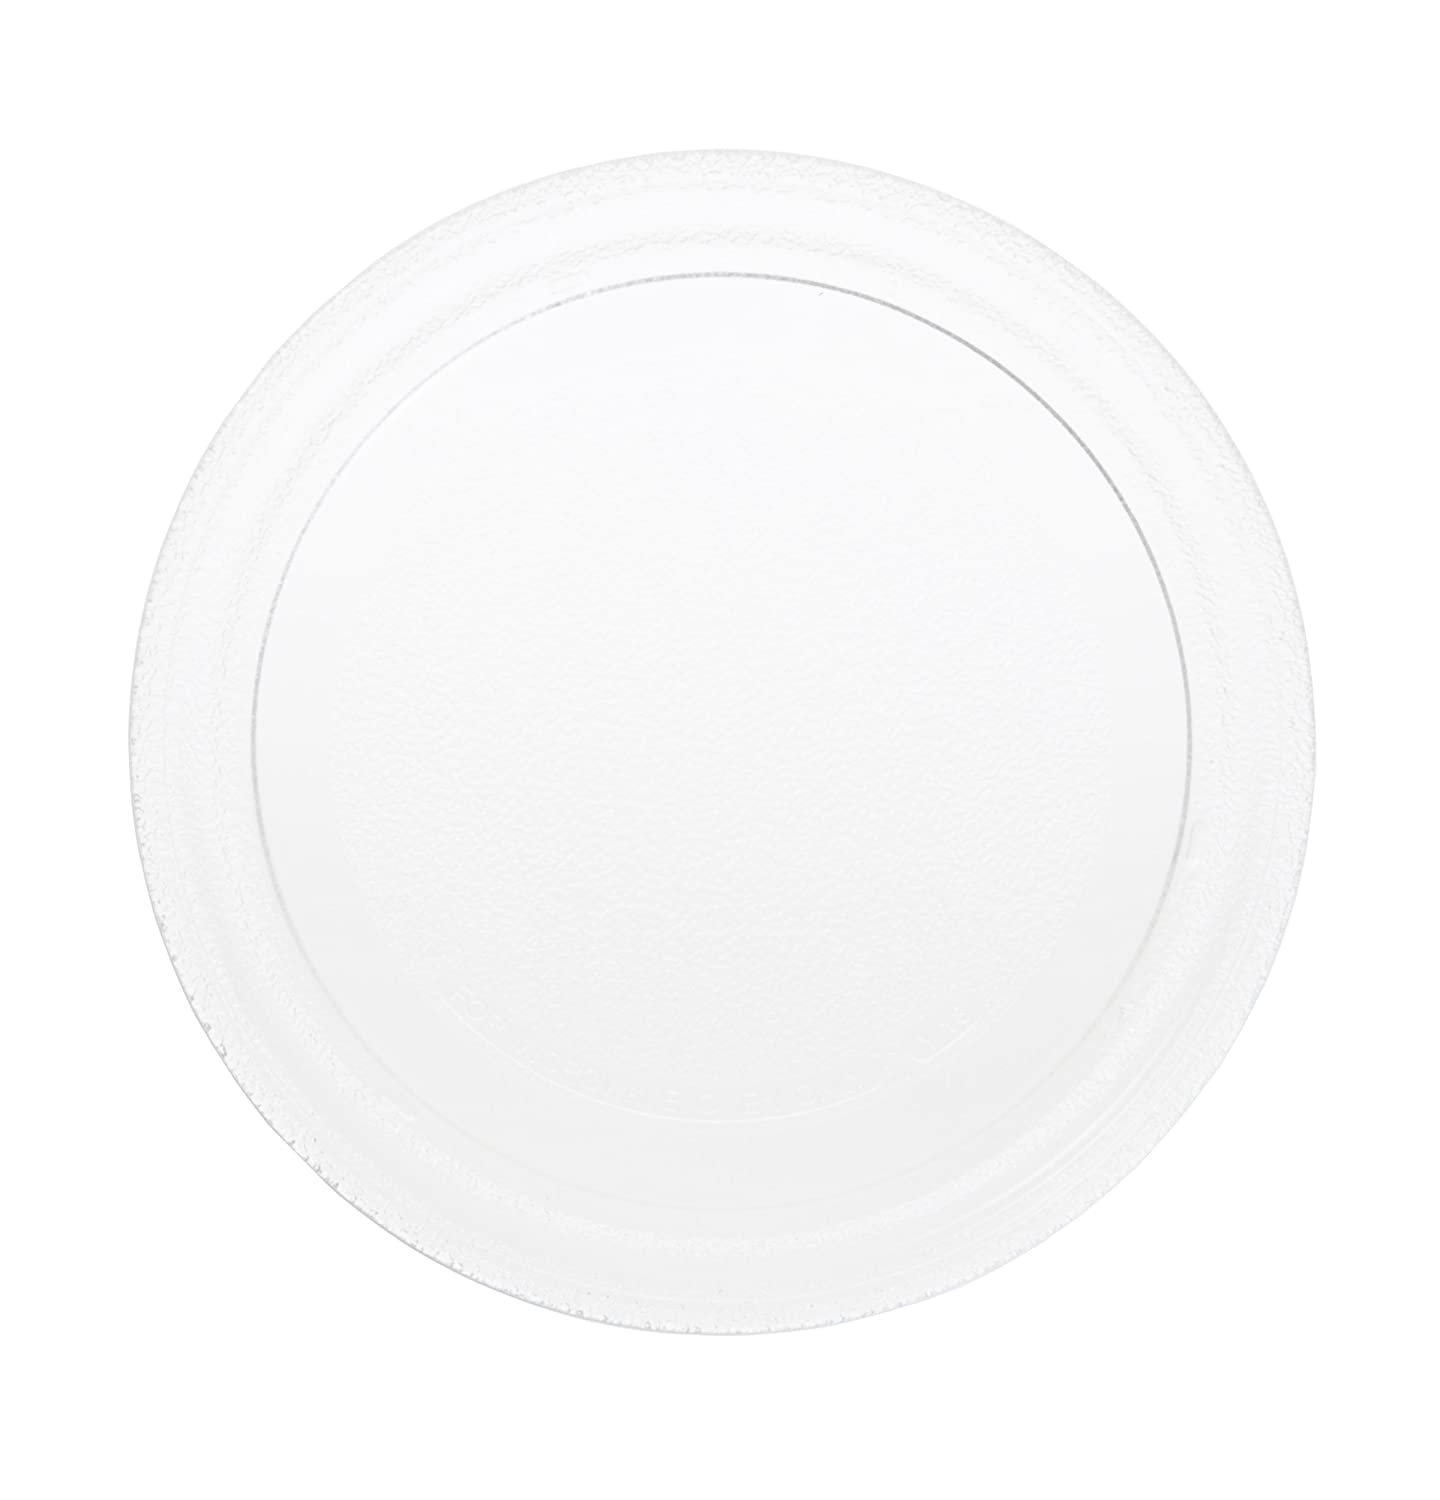 General Electric WB49X10010 Microwave Glass Tray